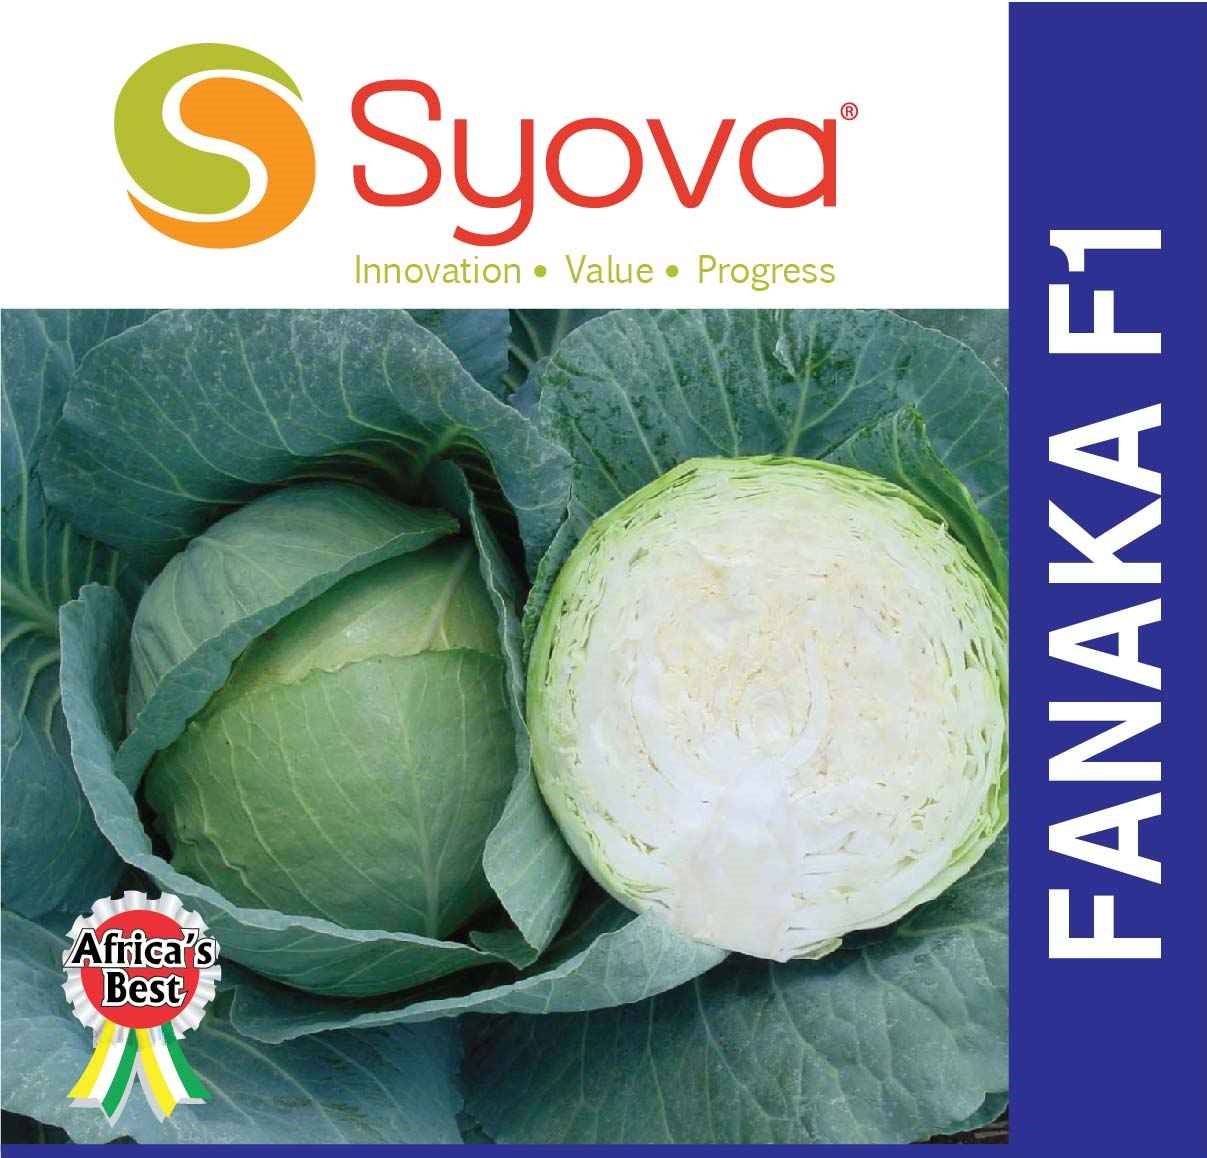 Fanaka F1 Cabbage farming package (1 acre)